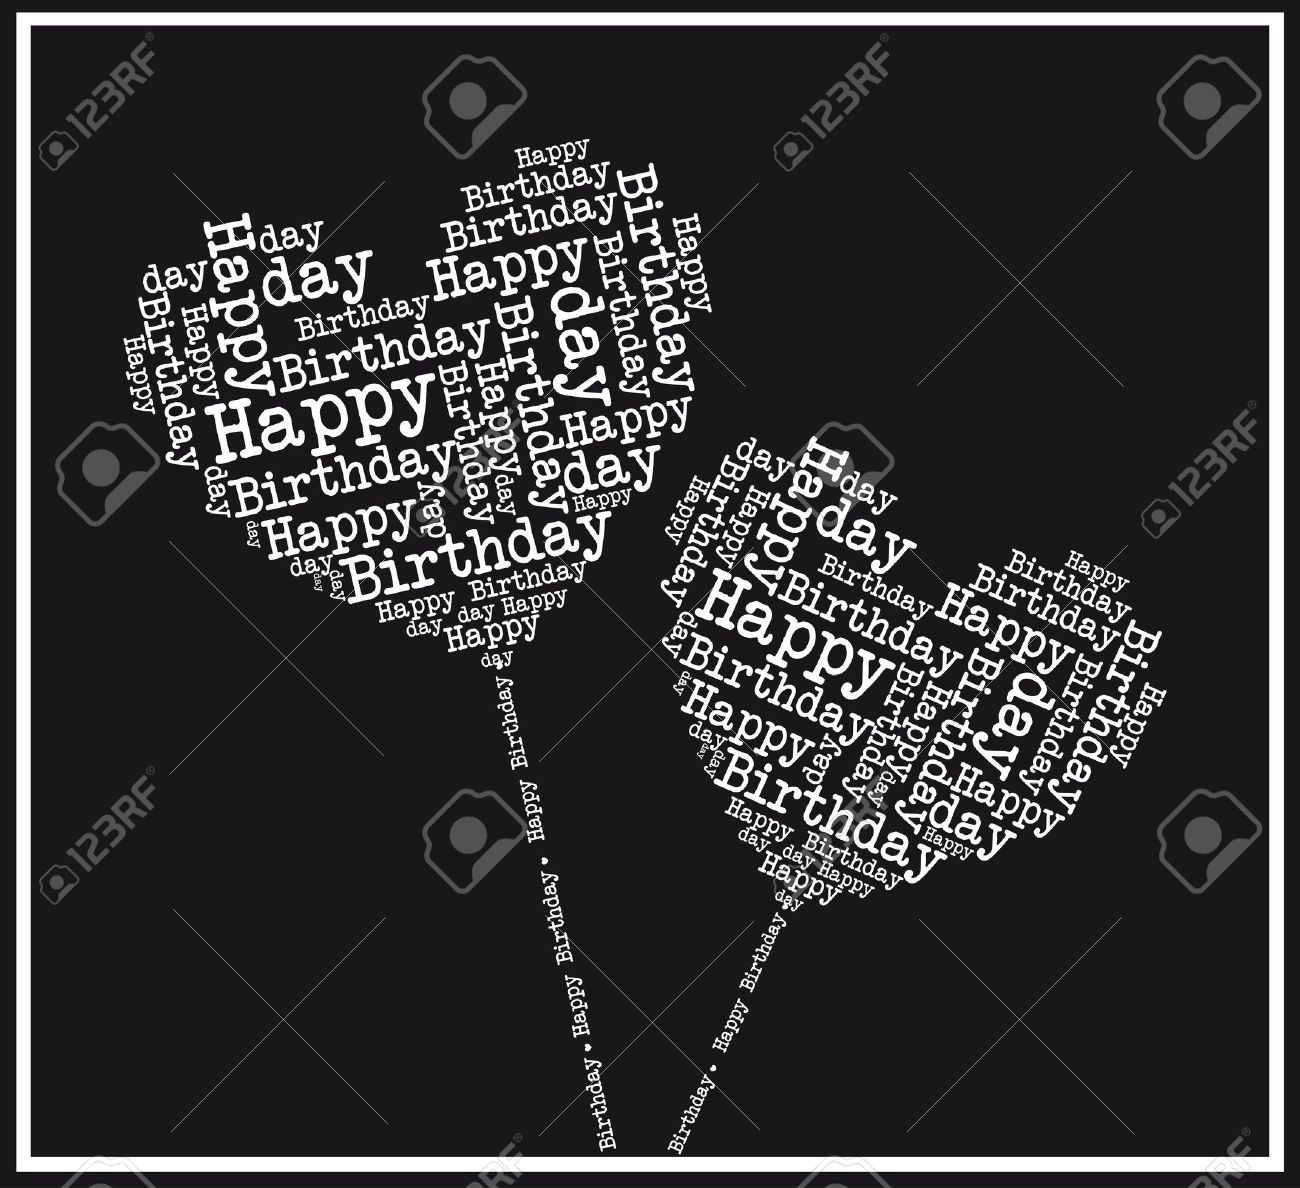 Black and white happy birthday hearts illustration